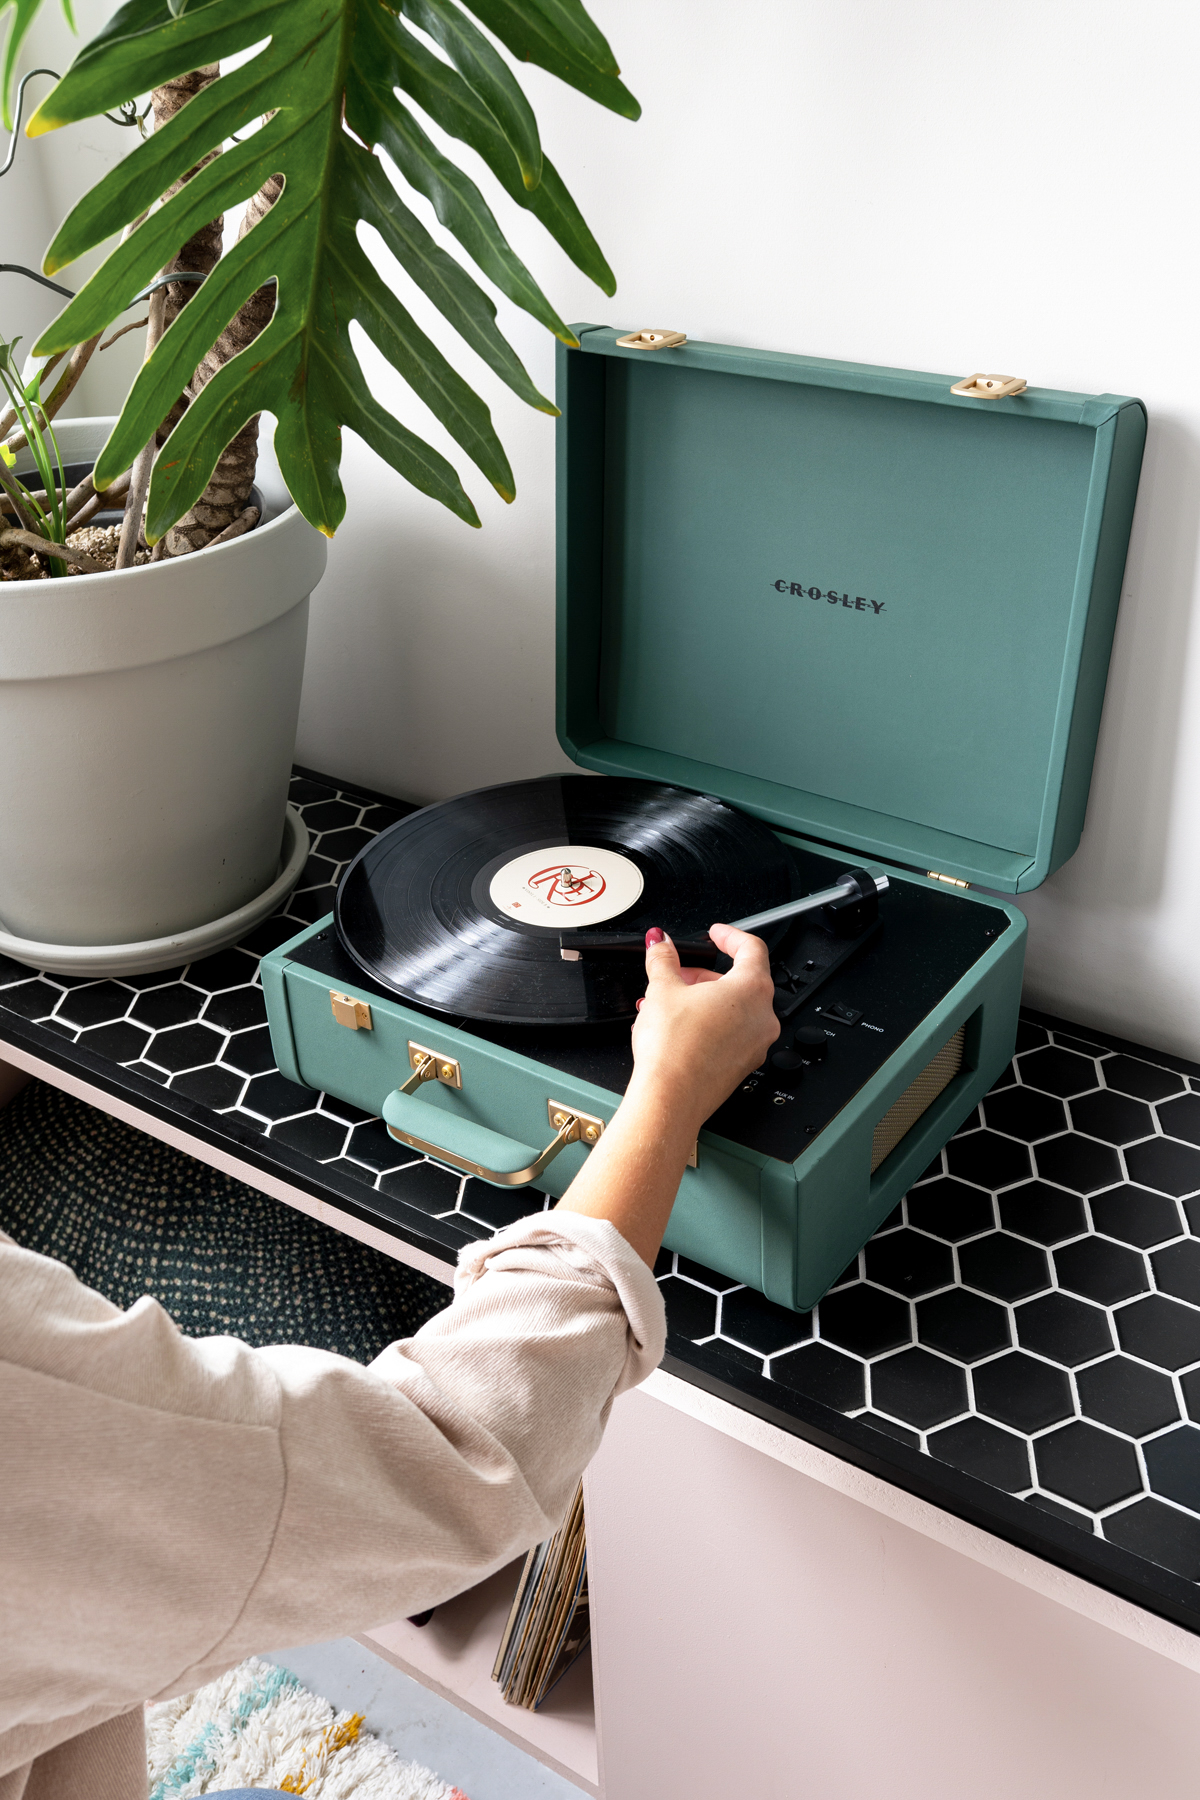 Crosley record player - Tanja van Hoogdalem